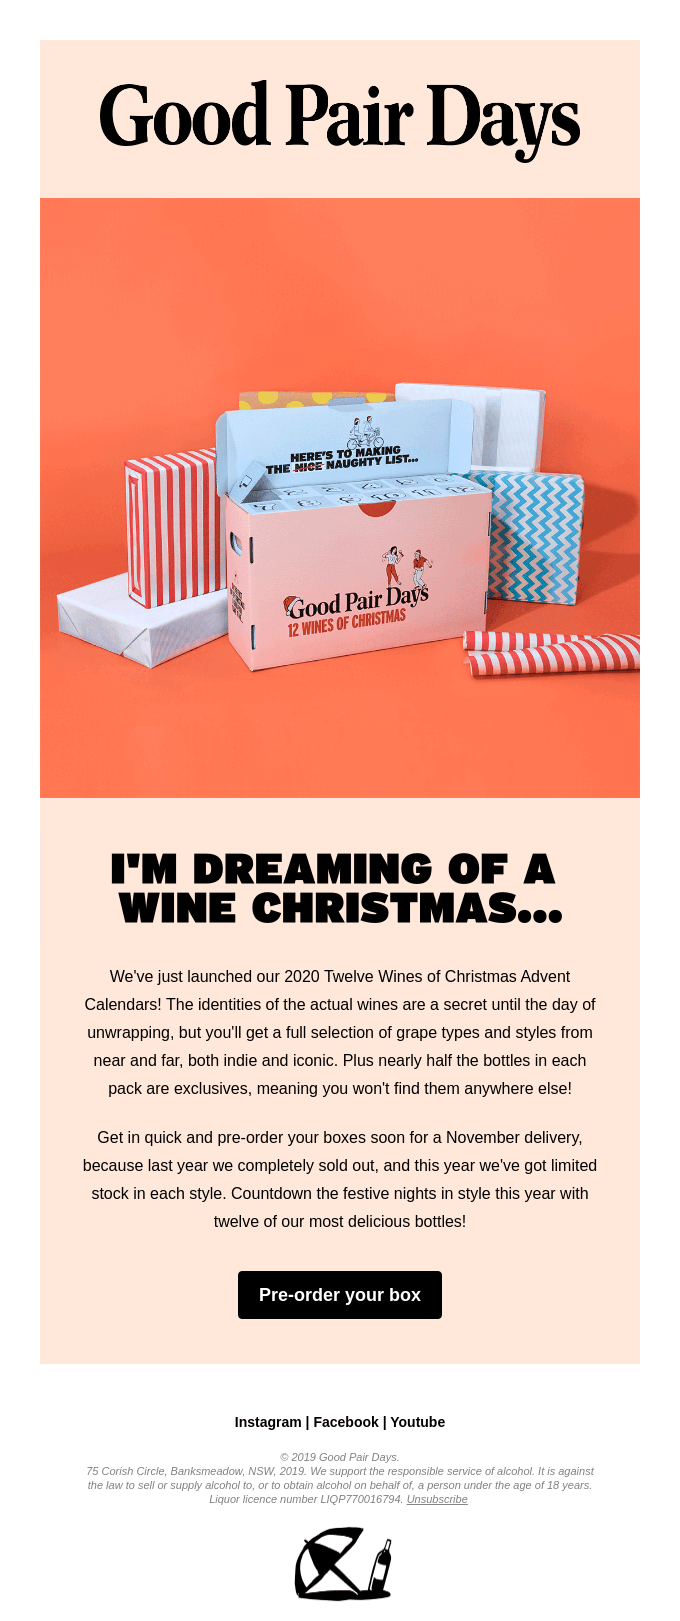 Just Launched - 12 Wines Of Christmas Advent Calendars 2020🎄🍷